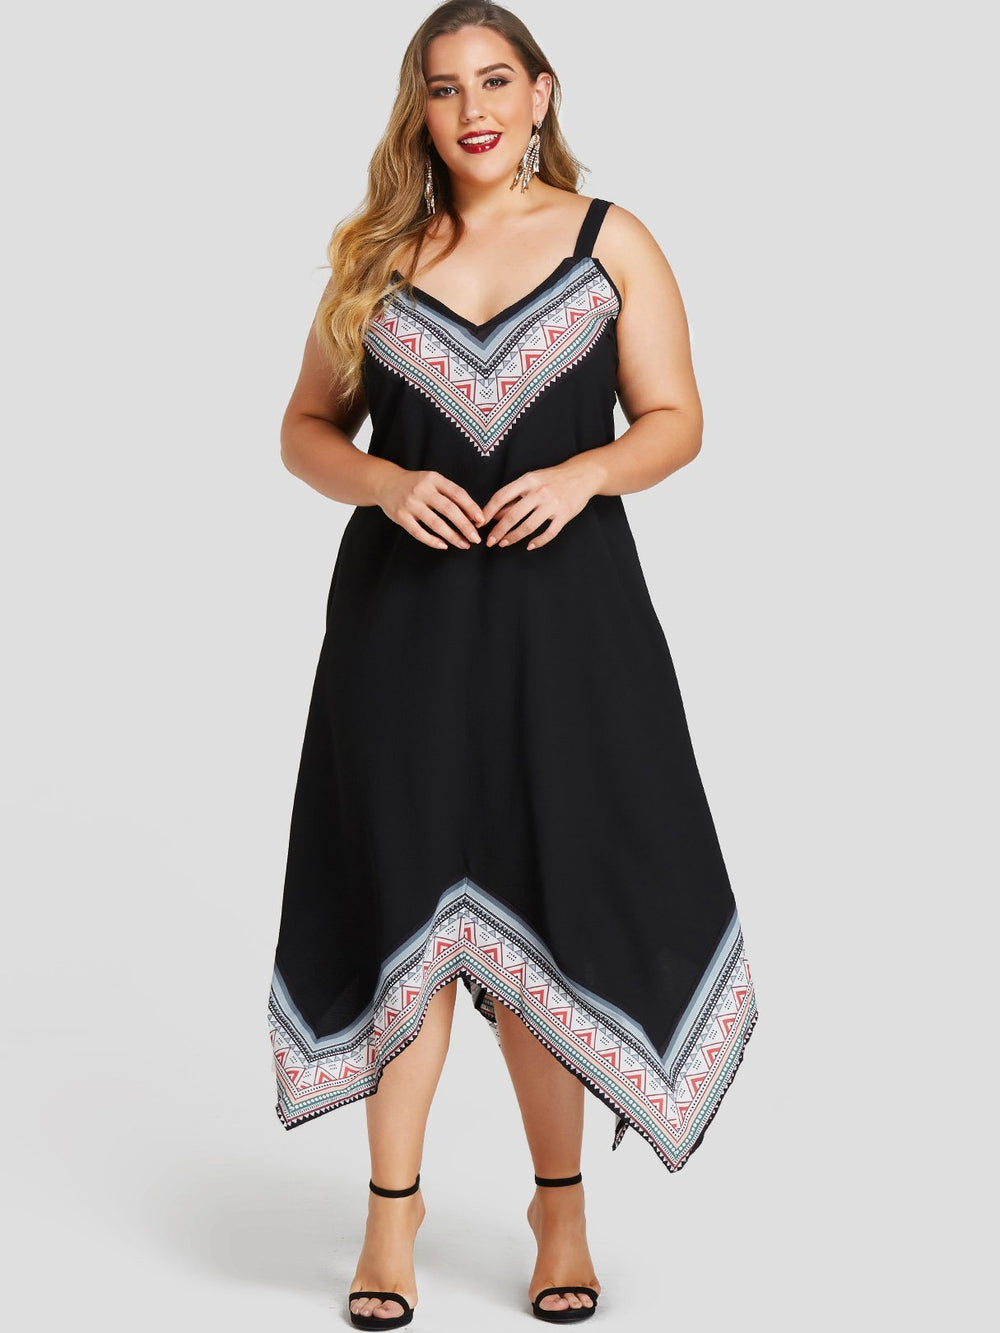 V-Neck Tribal Print Spaghetti Strap Irregular Hem Black Plus Size Dress